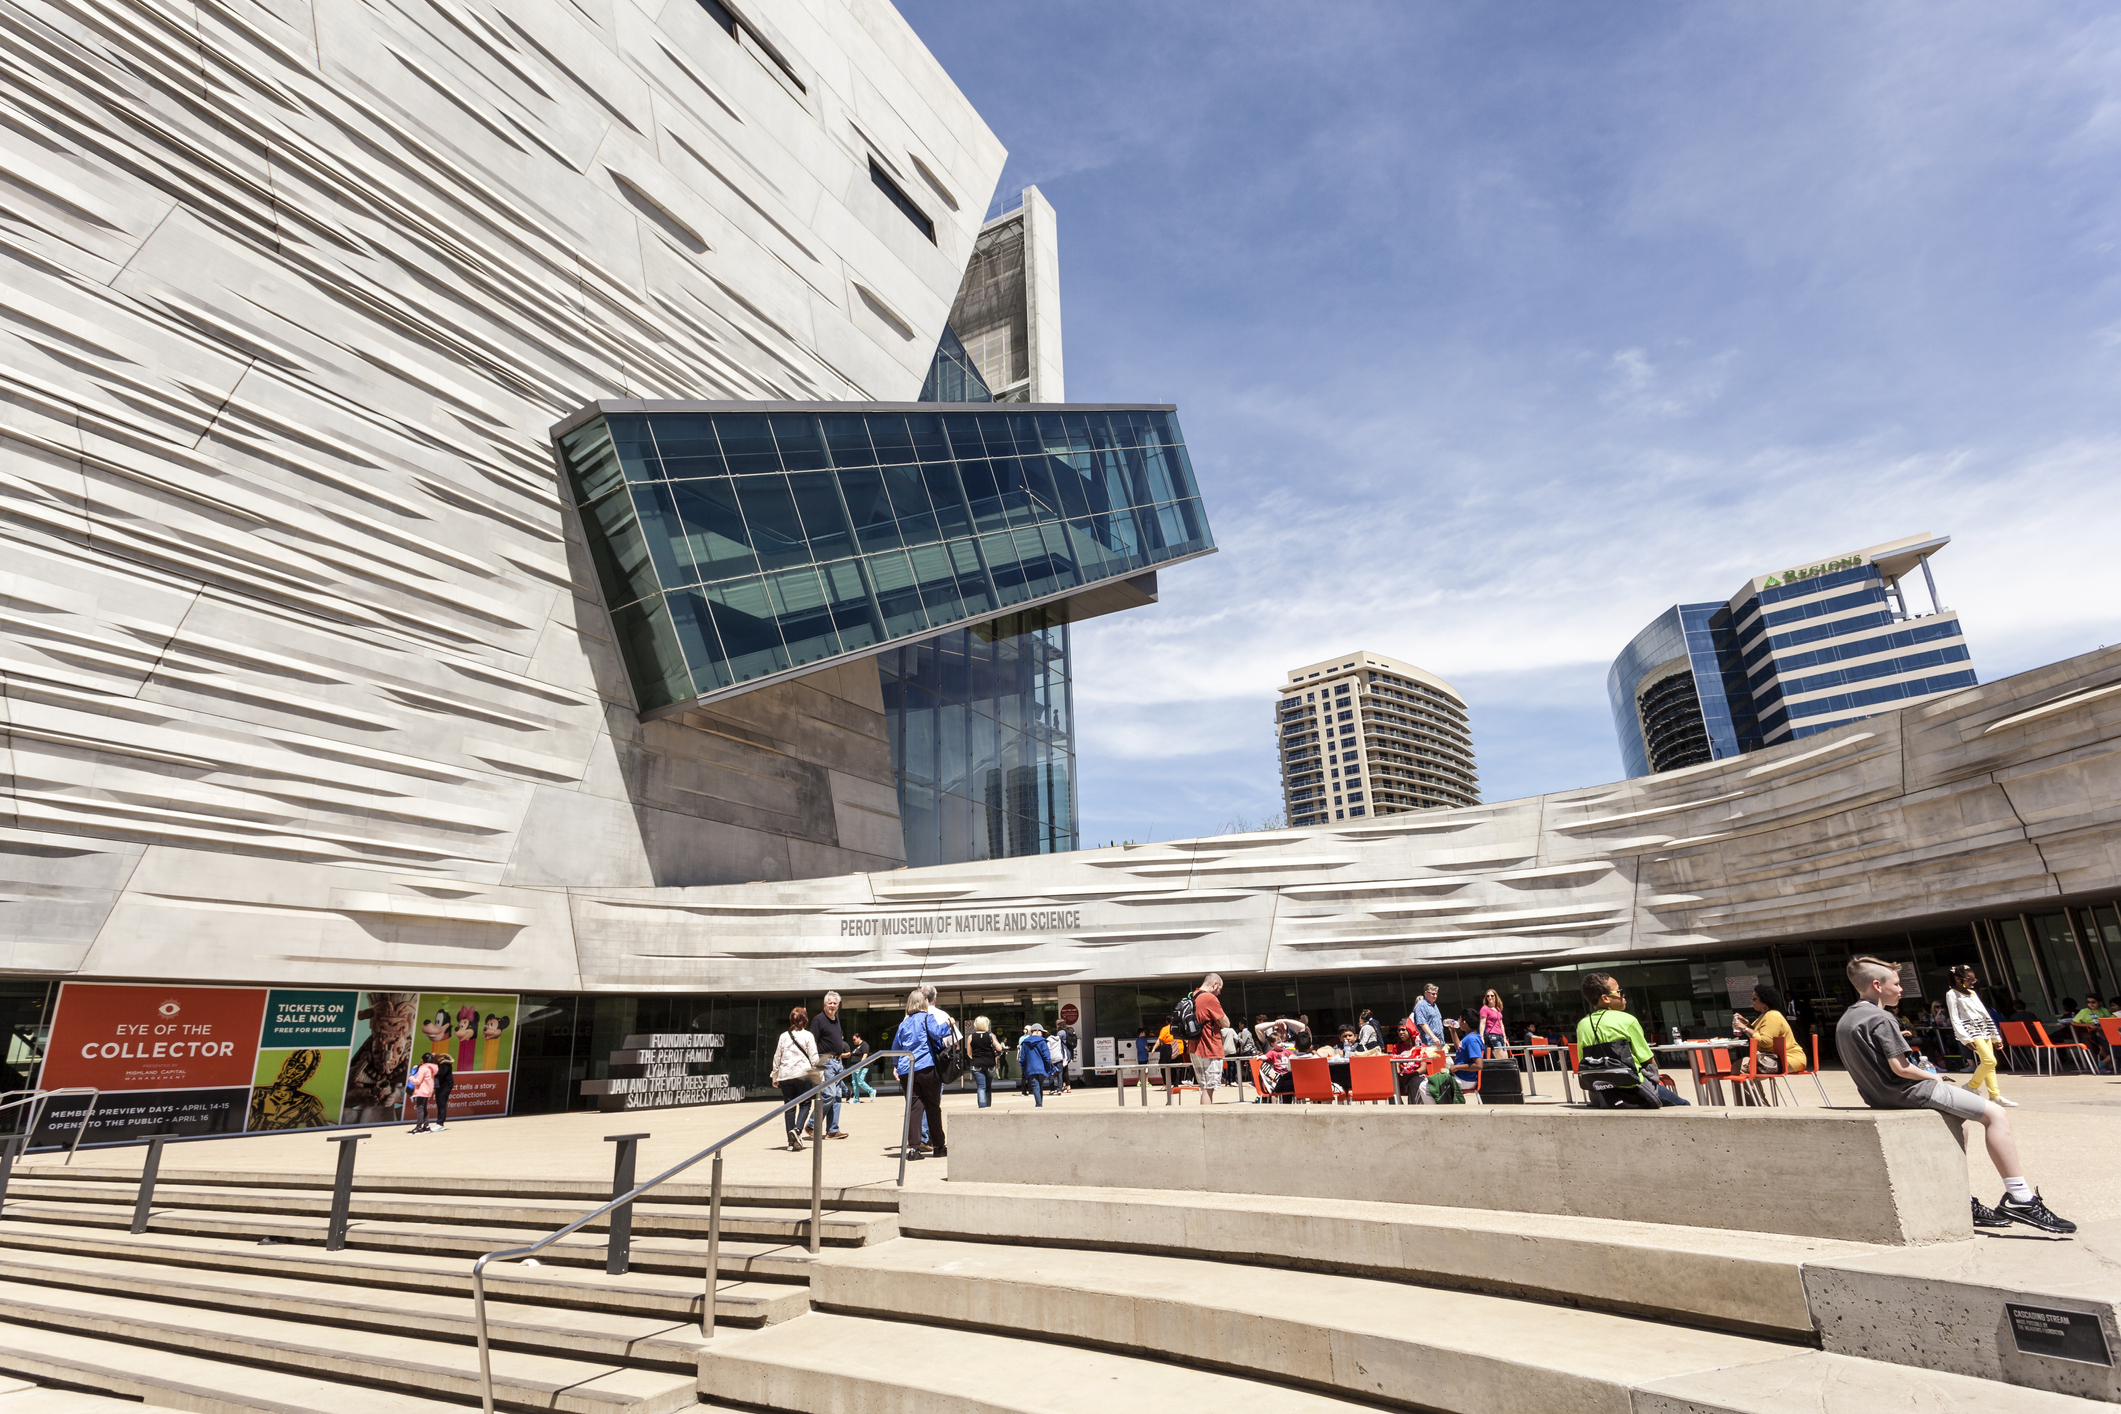 Perot museum exhibits in Dallas